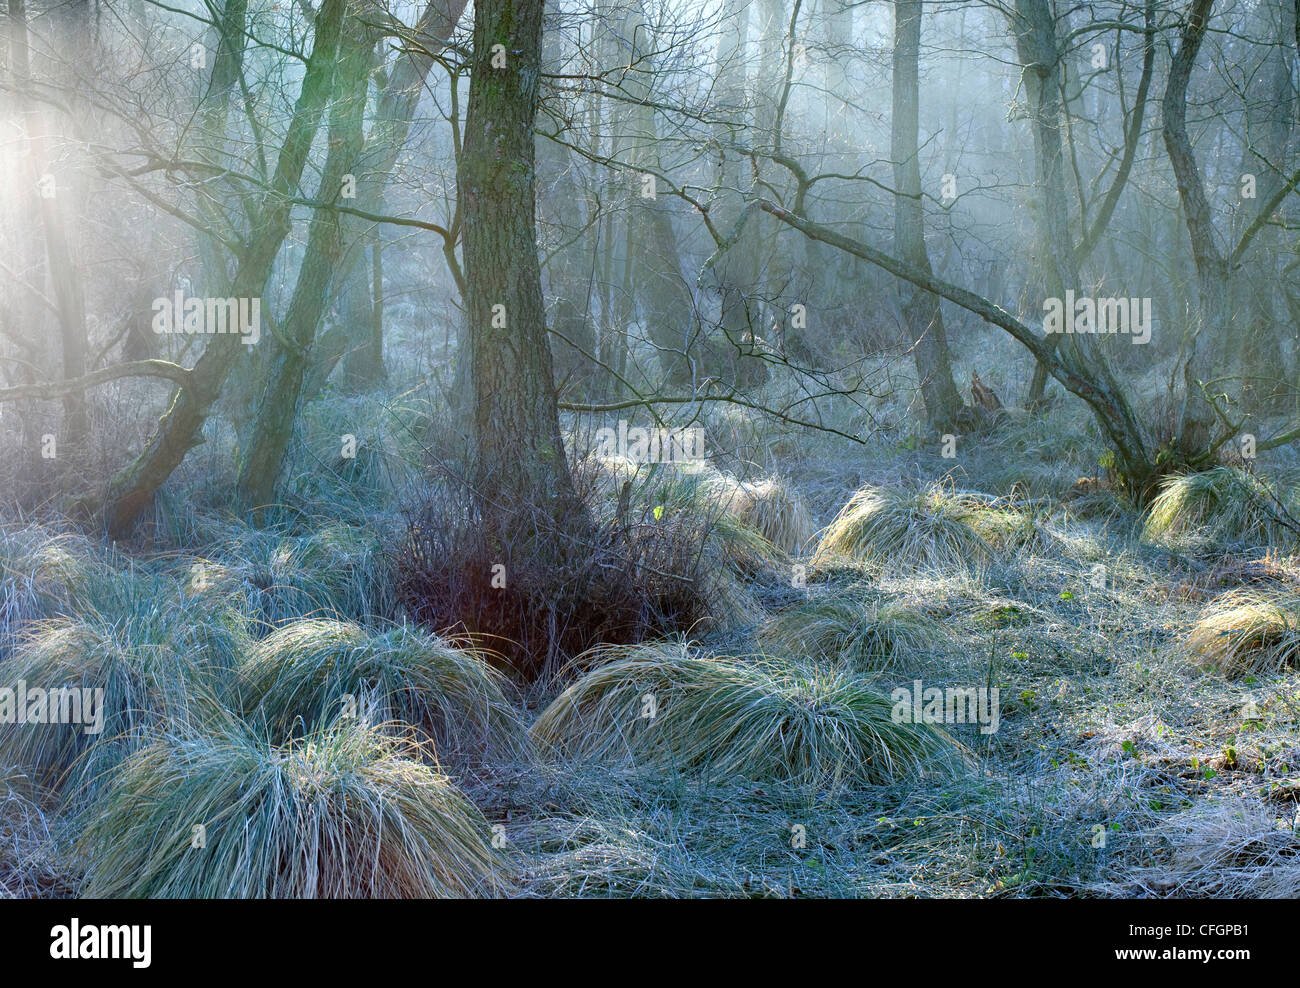 Mist in Sherbrook Valley mid-winter Cannock Chase Country Park AONB (area of outstanding natural beauty) in Staffordshire - Stock Image